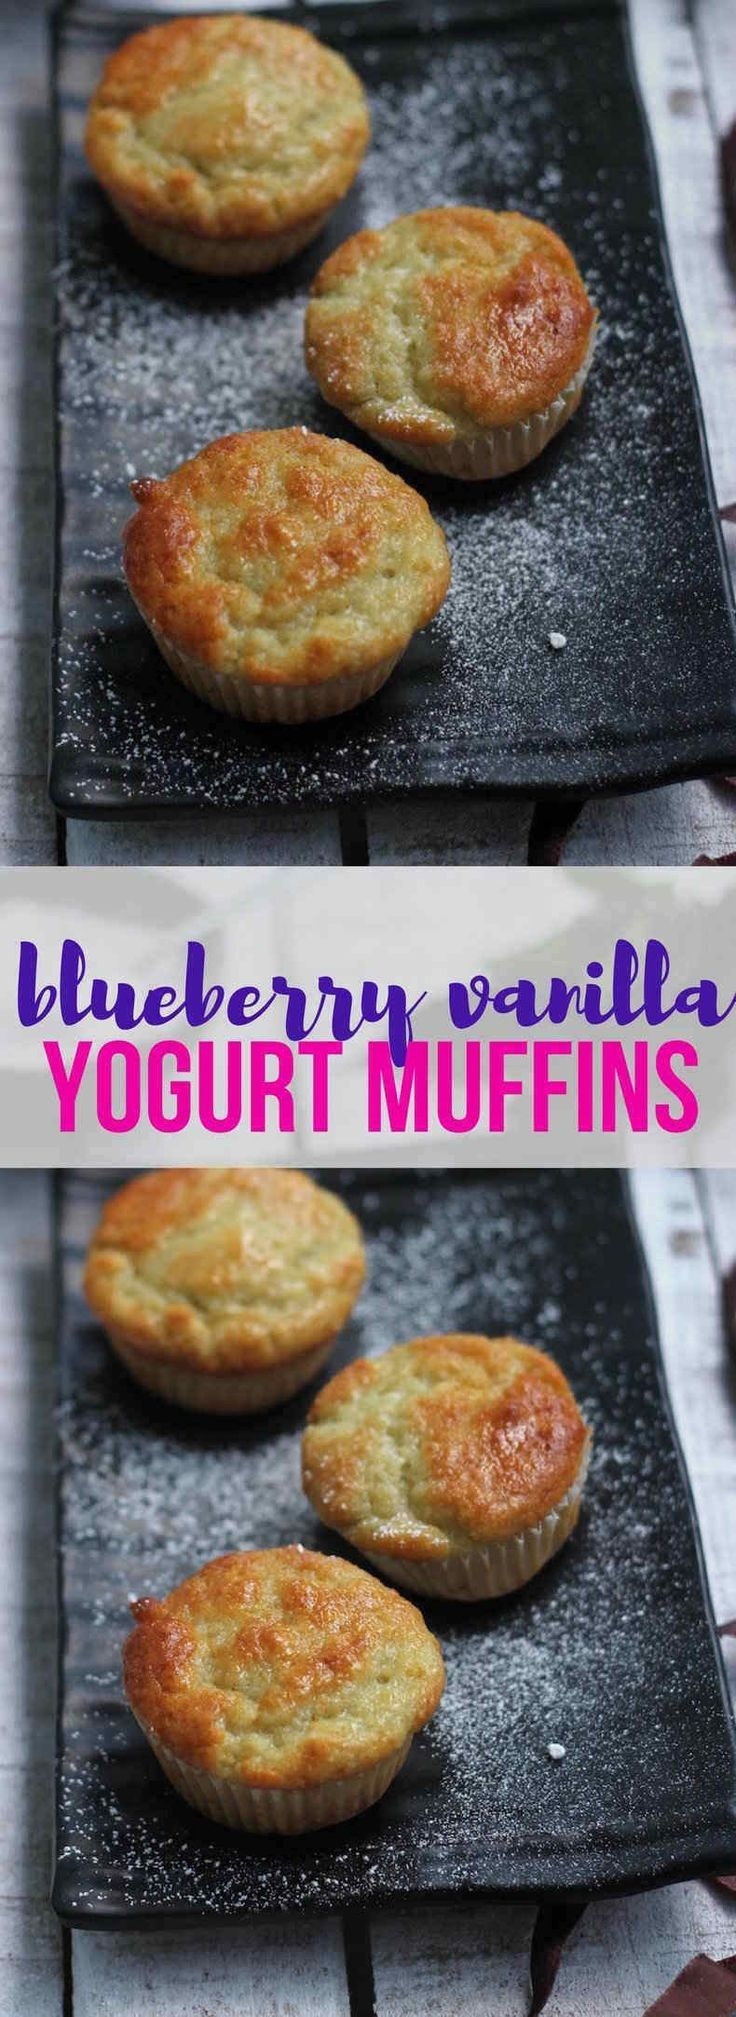 These Blueberry Vanilla Yogurt Muffins made with the addition of blueberry and vanilla yogurt are deliciously fruity muffins that you can make even if you don't have blueberries on hand